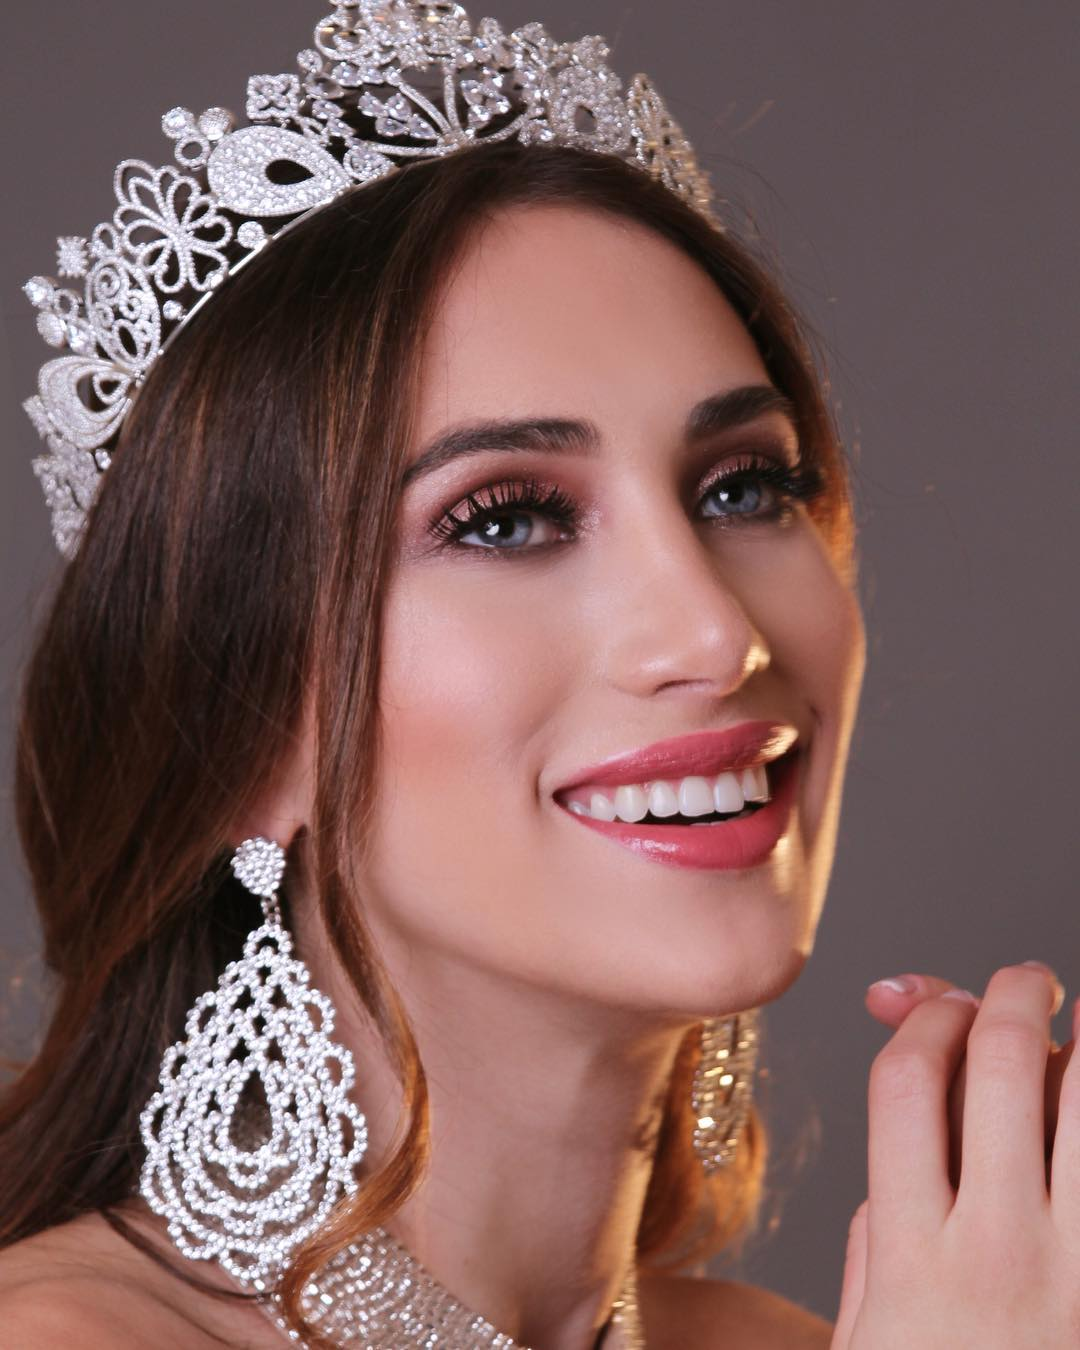 marcella marques, miss global city brazil 2017. 20635210